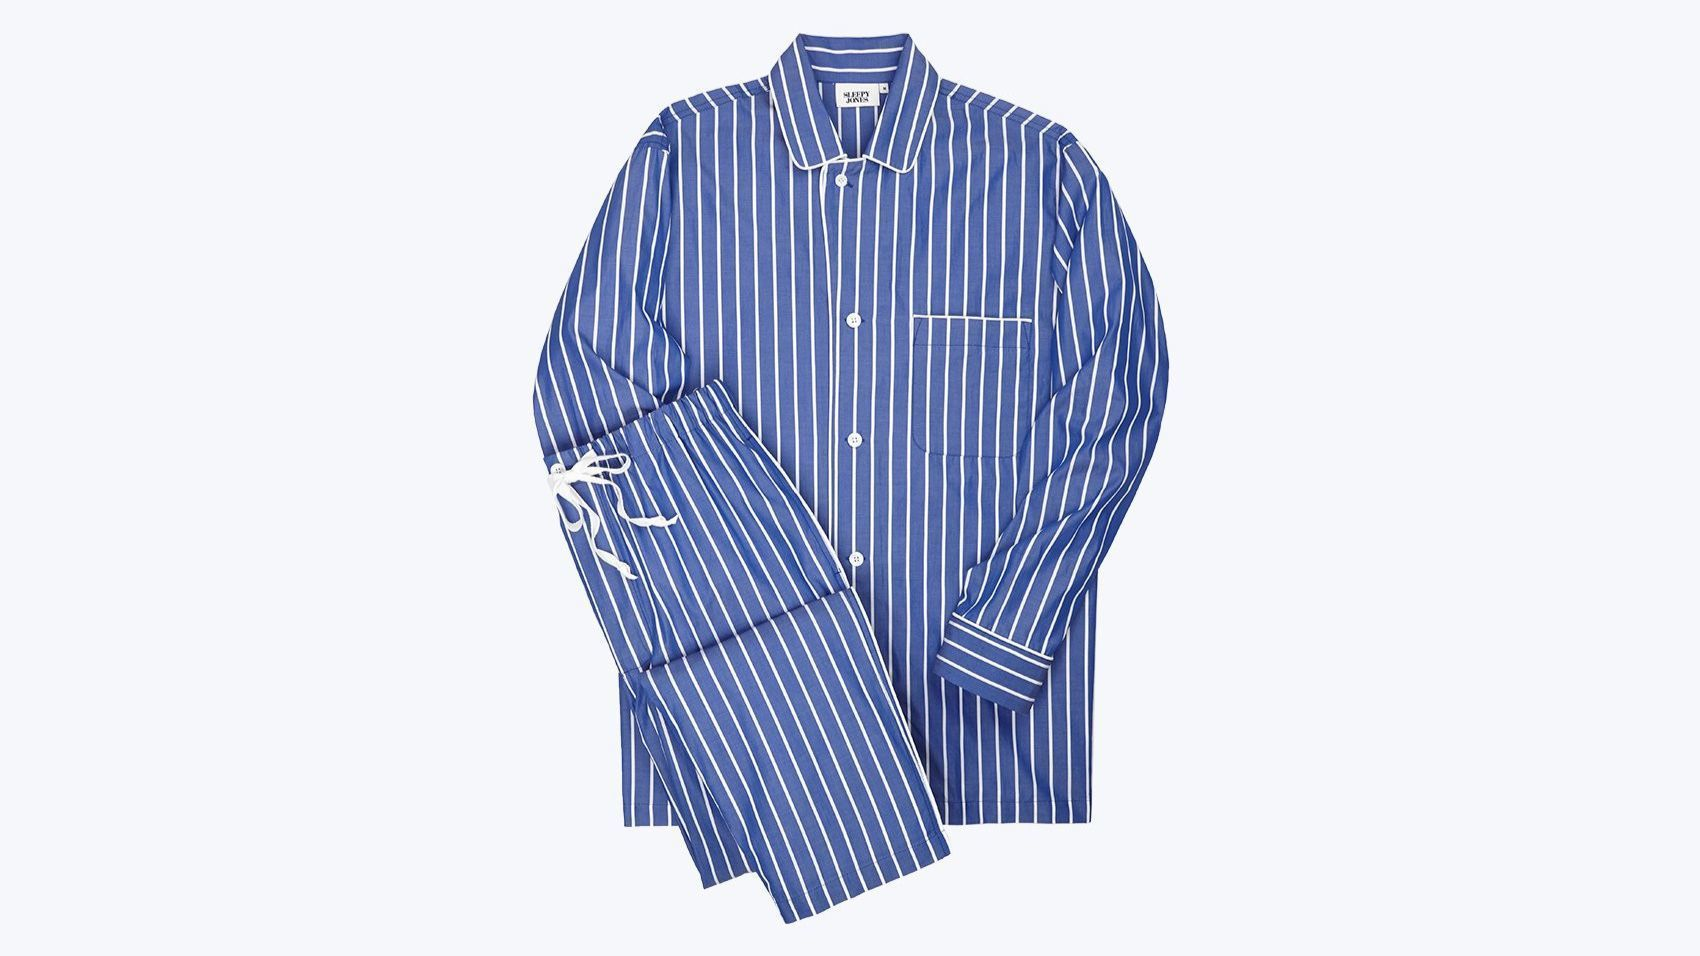 Lowell Pajama Set in blue-and-white stripes from Sleepy Jones.